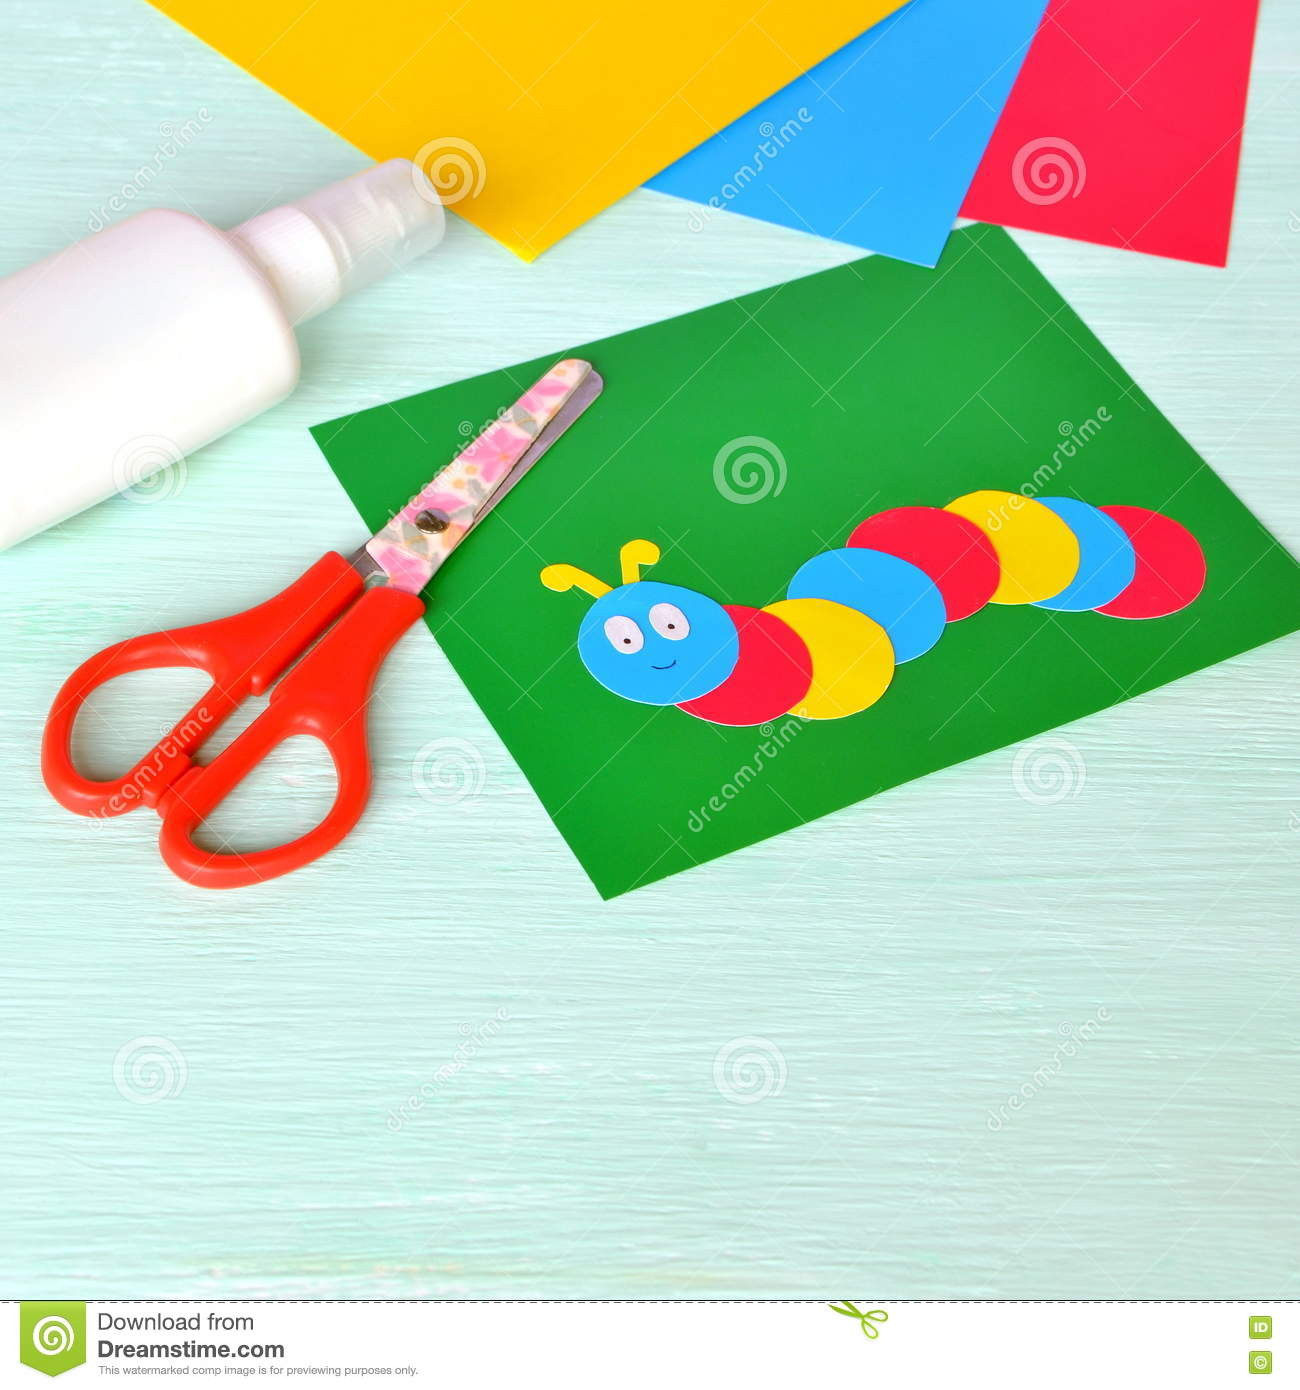 Children\'s Cardboard Crafts - Colored Caterpillar On A Green Paper ...